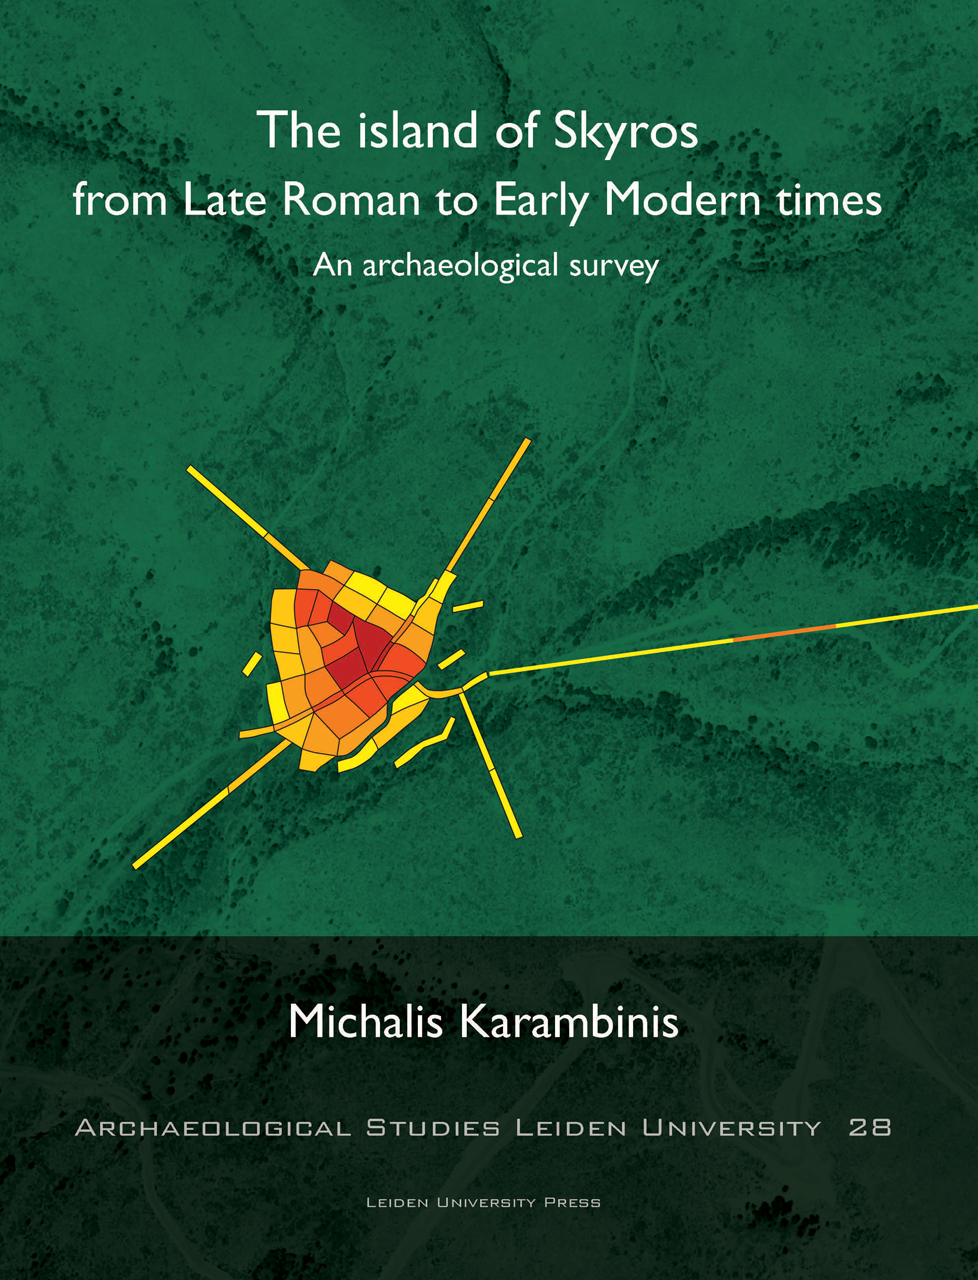 The Island of Skyros from Late Roman to Early Modern Times: An Archaeological Survey